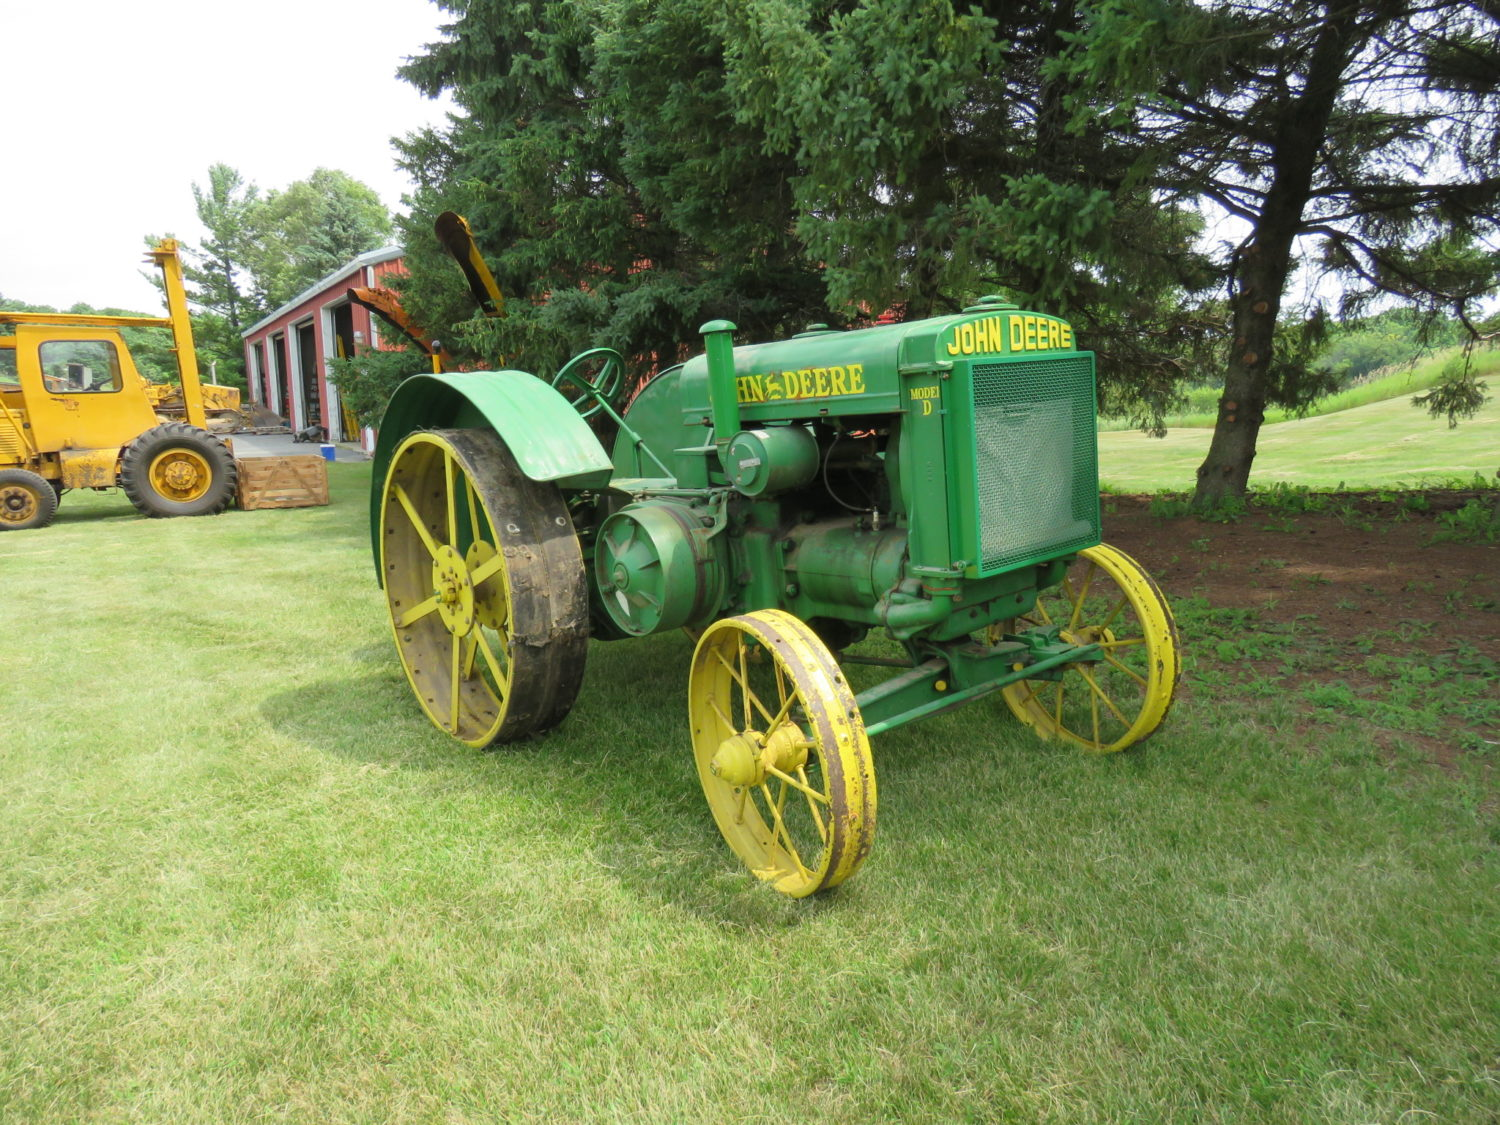 Collector Cars, Antique Tractors, Parts, Memorabilia & More.. The Del Beyer Estate Auction - image 13